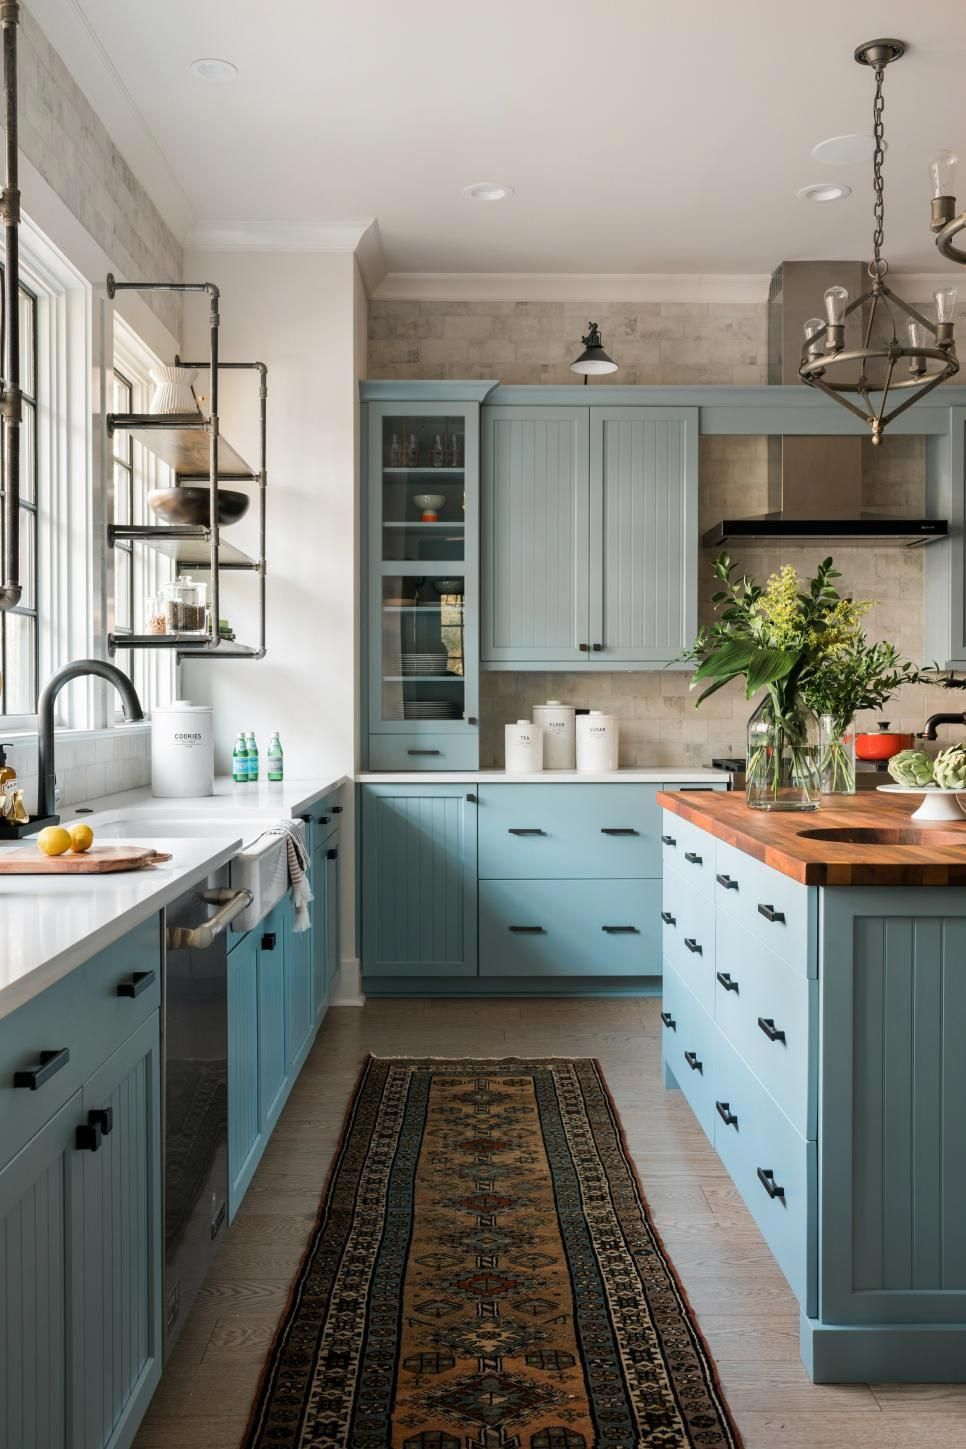 Begin Using These Ways To Assure A Great Experience Smarthome With Images Interior Design Kitchen Kitchen Interior Kitchen Inspirations